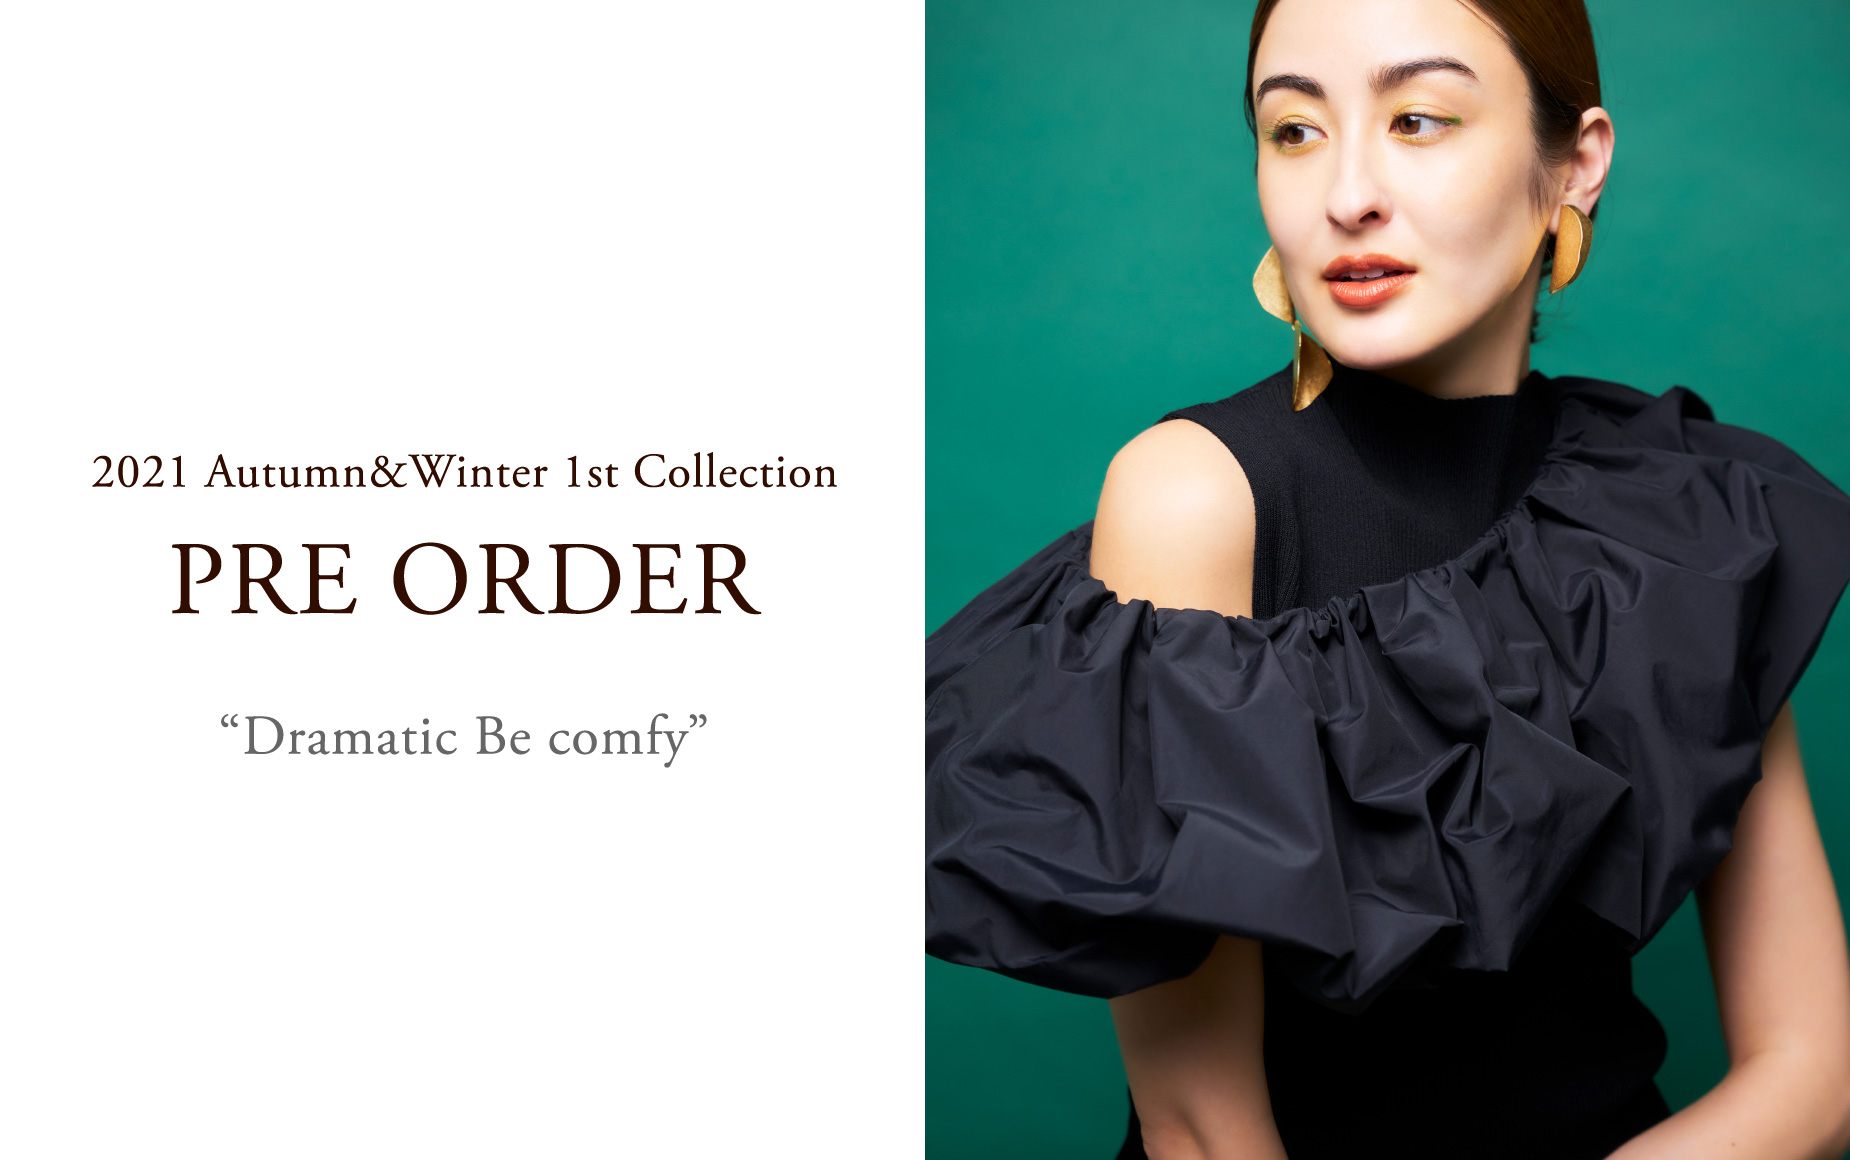 """2021 Autumn&Winter 1st Collection PRE ORDER """"Dramatic Be comfy"""""""